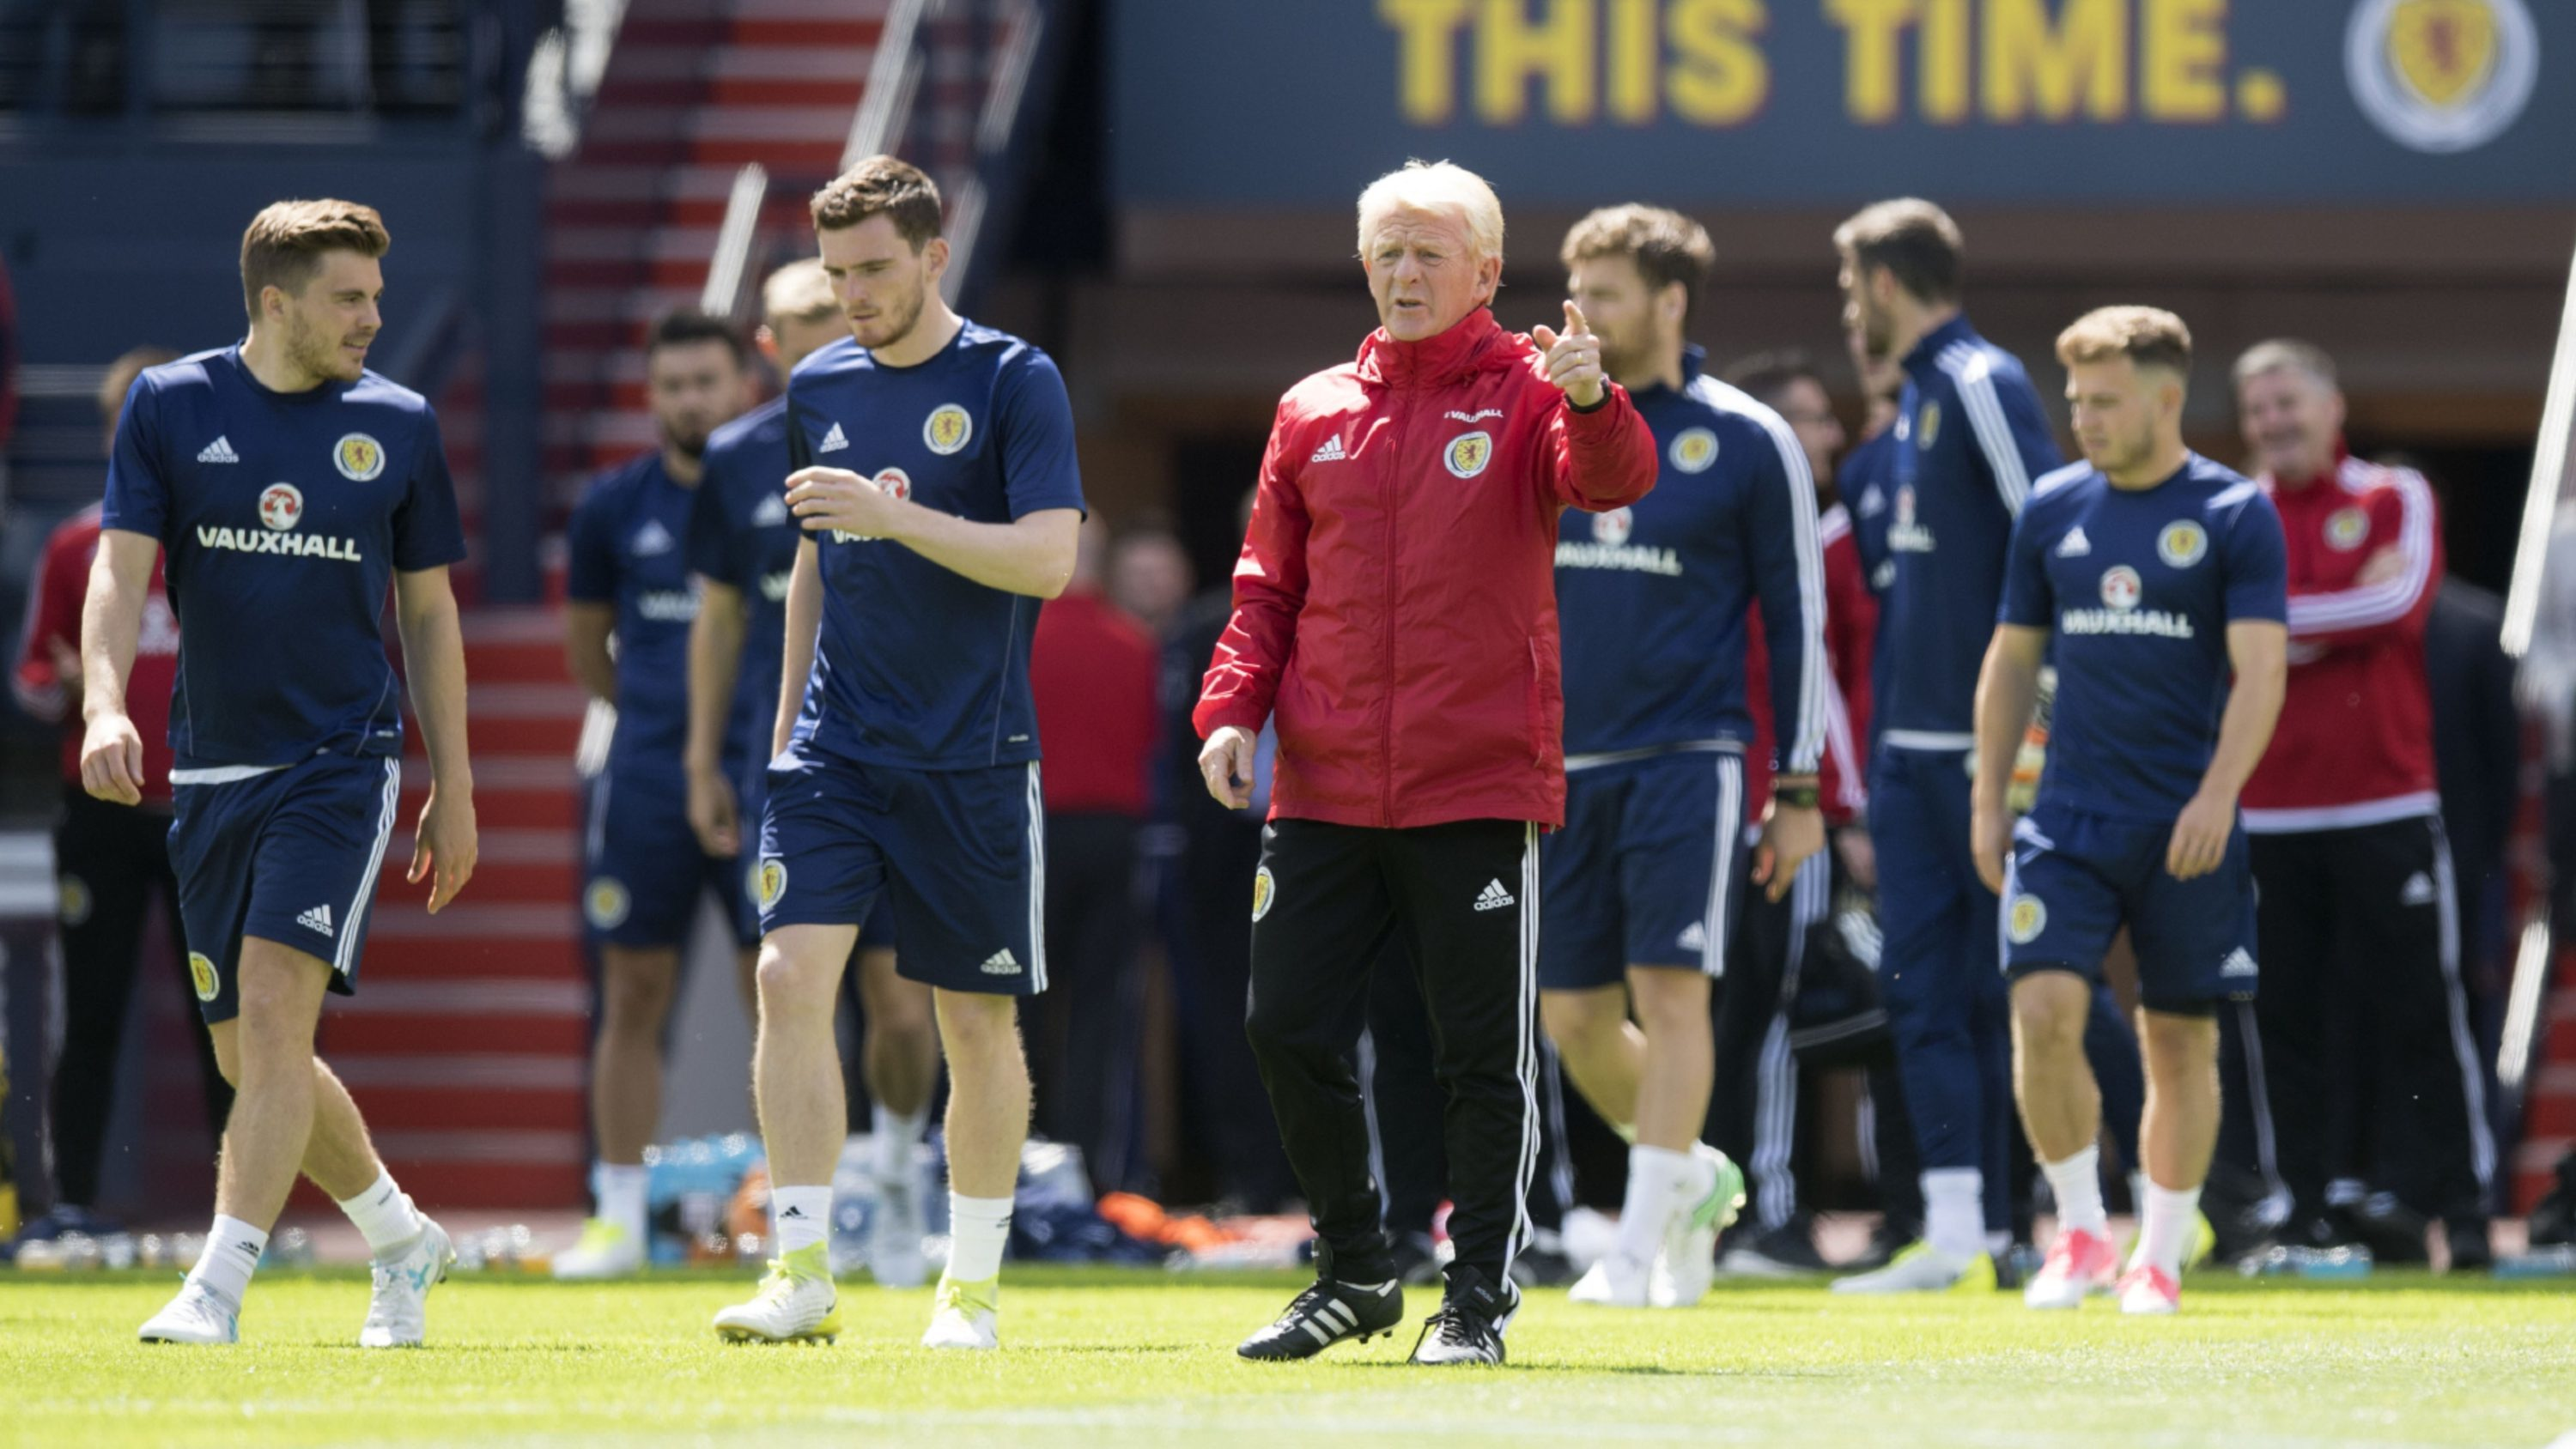 Manager Gordon Strachan and the Scotland players.